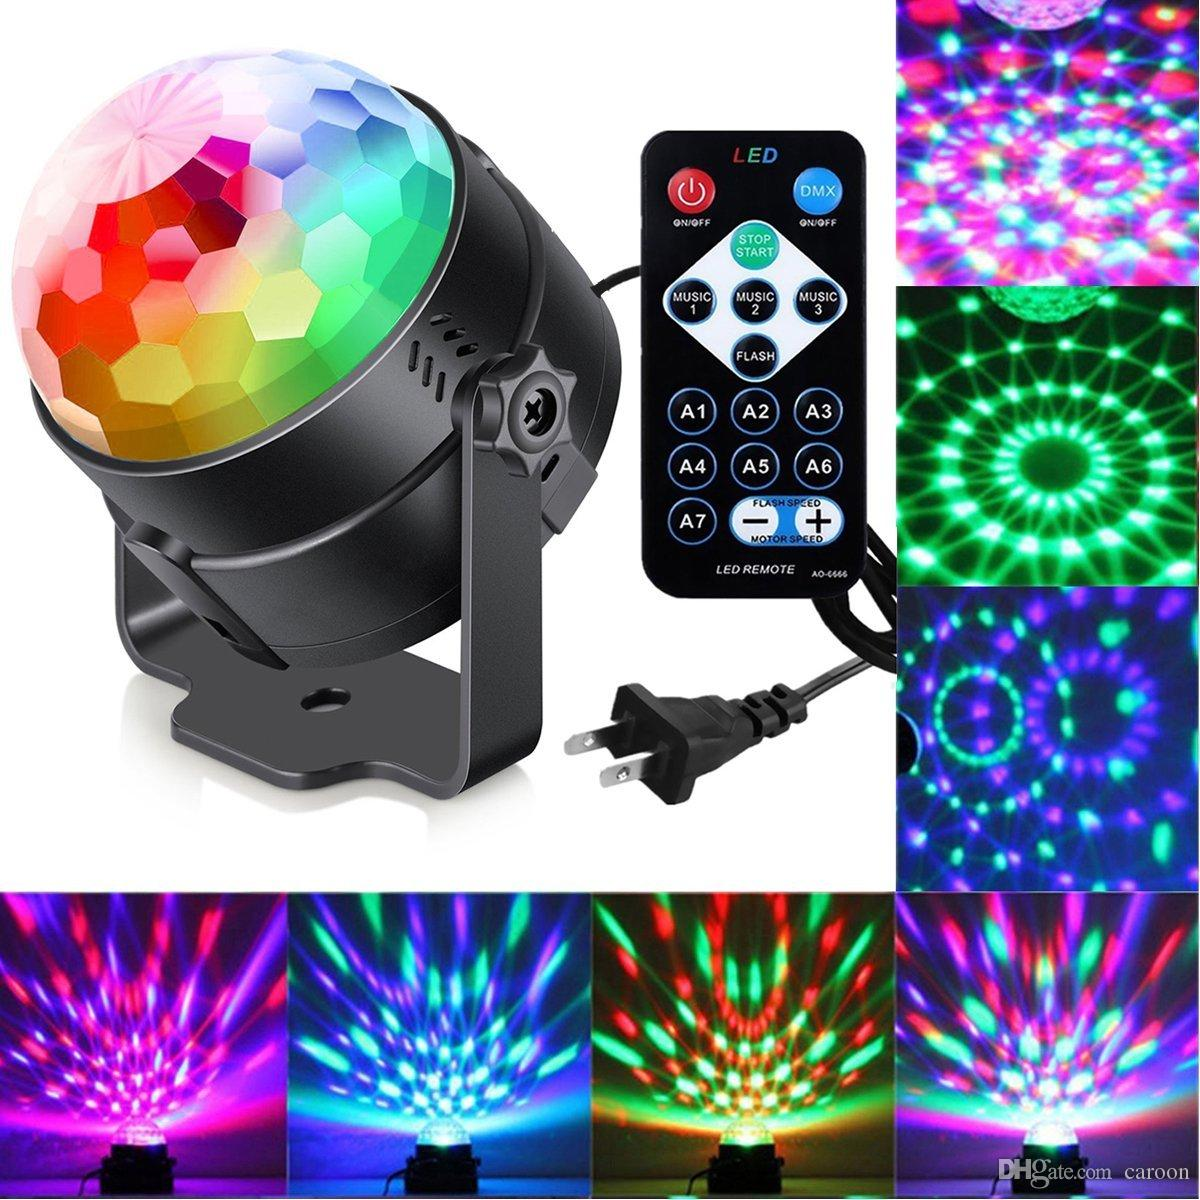 Delightful Sumger 7 Modes Sound Activated Party Lights With Remote Control Dj Lighting,Rbg  Disco Ball,Strobe Stage Par Light For Home Room Dance Partie Theatre Stage  ...